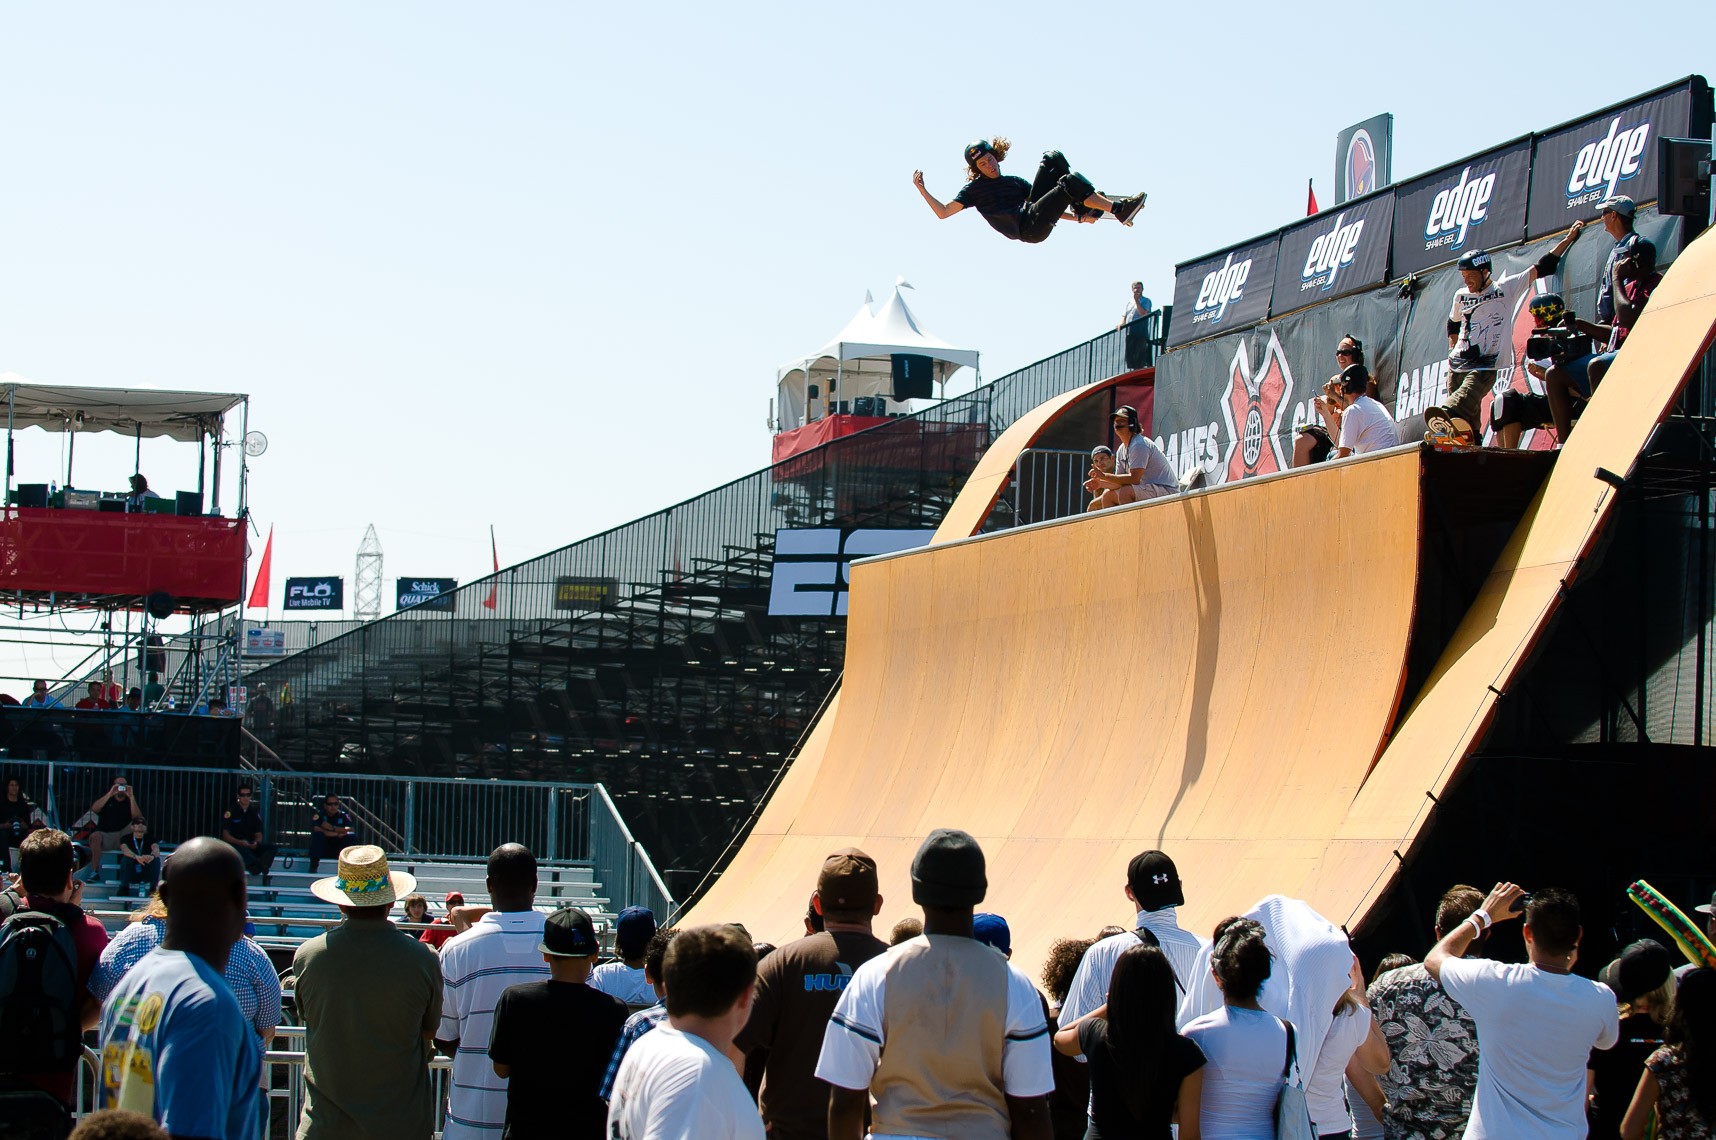 X Games Skateboard Action Sports Photos